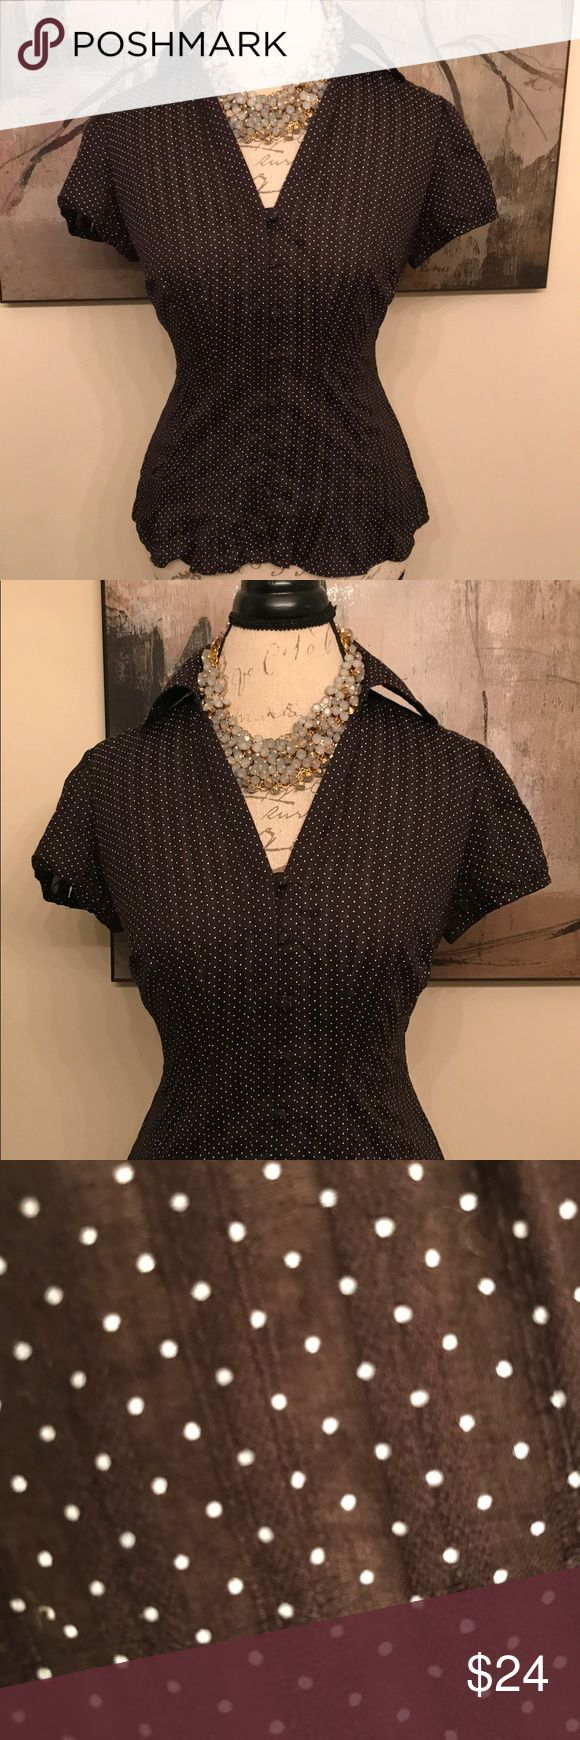 FEMININE brown polka dot short sleeves blouse! 🌸 ROMANTIC, fun and flirty!!! This short sleeved polka dot Boise from Ann Taylor goes literally anywhere you do!!! Ann Taylor Tops Blouses